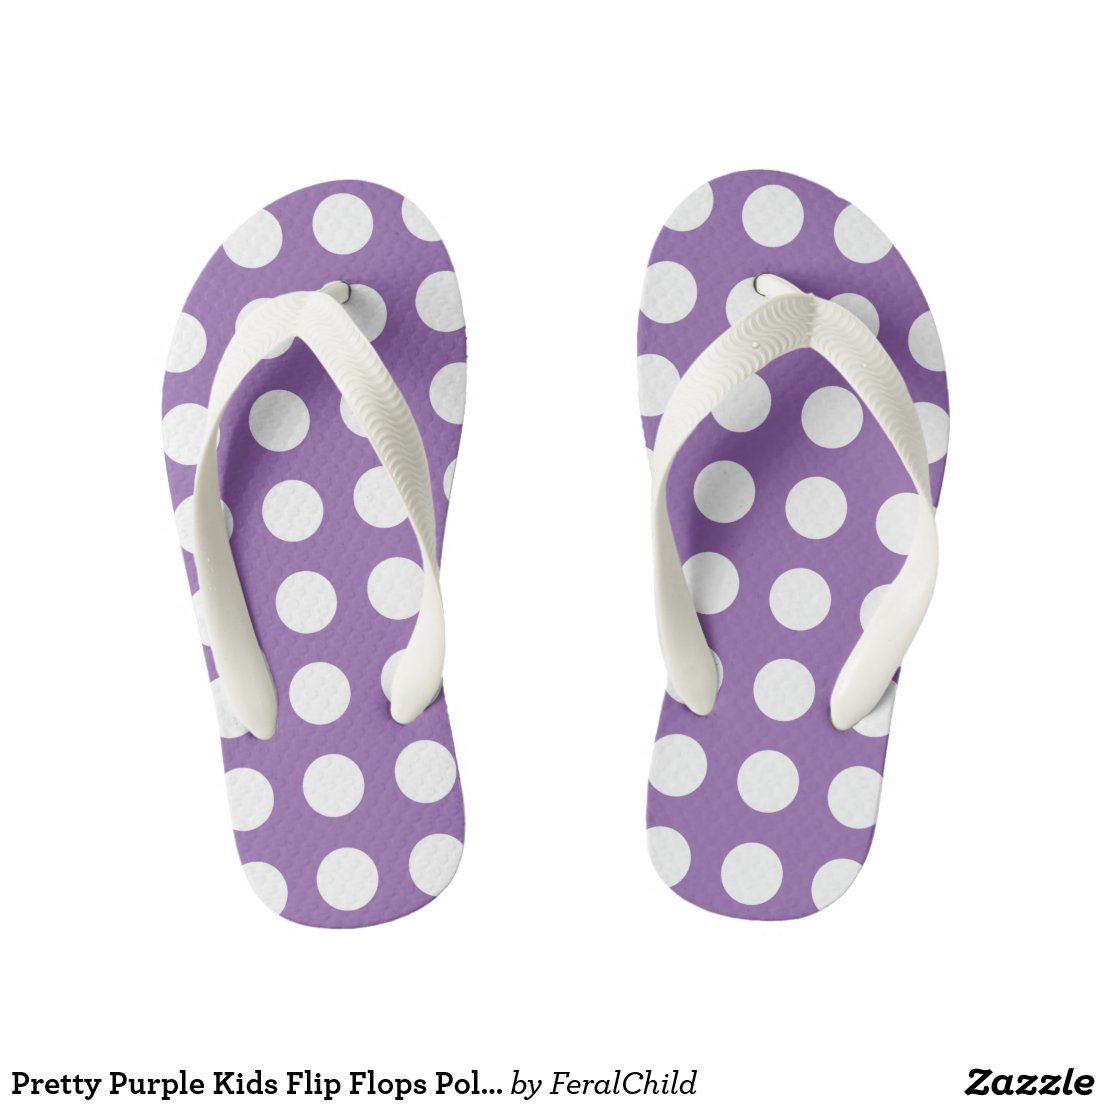 Pretty Purple Kids Flip Flops Polka Dot